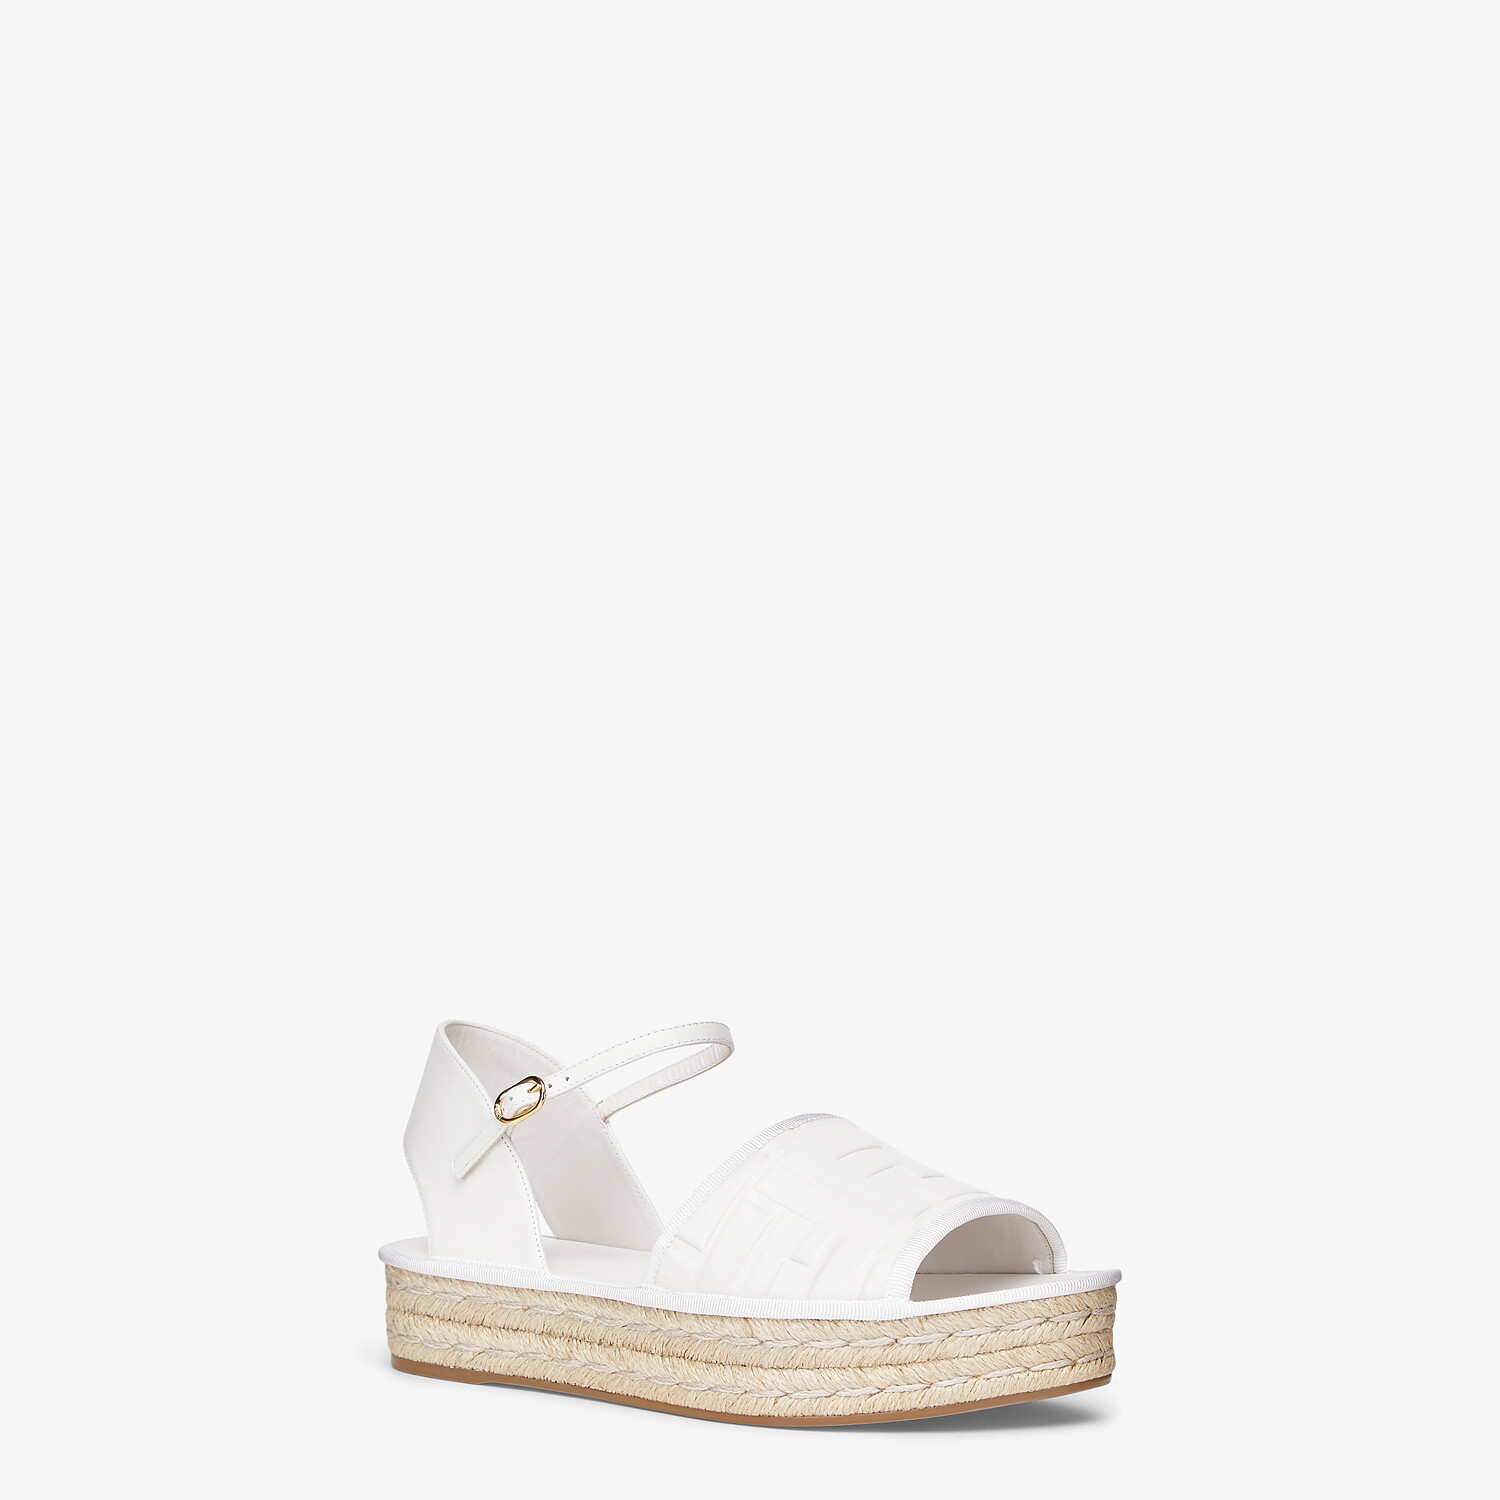 FENDI ESPADRILLES - White leather flatform espadrilles - view 2 detail